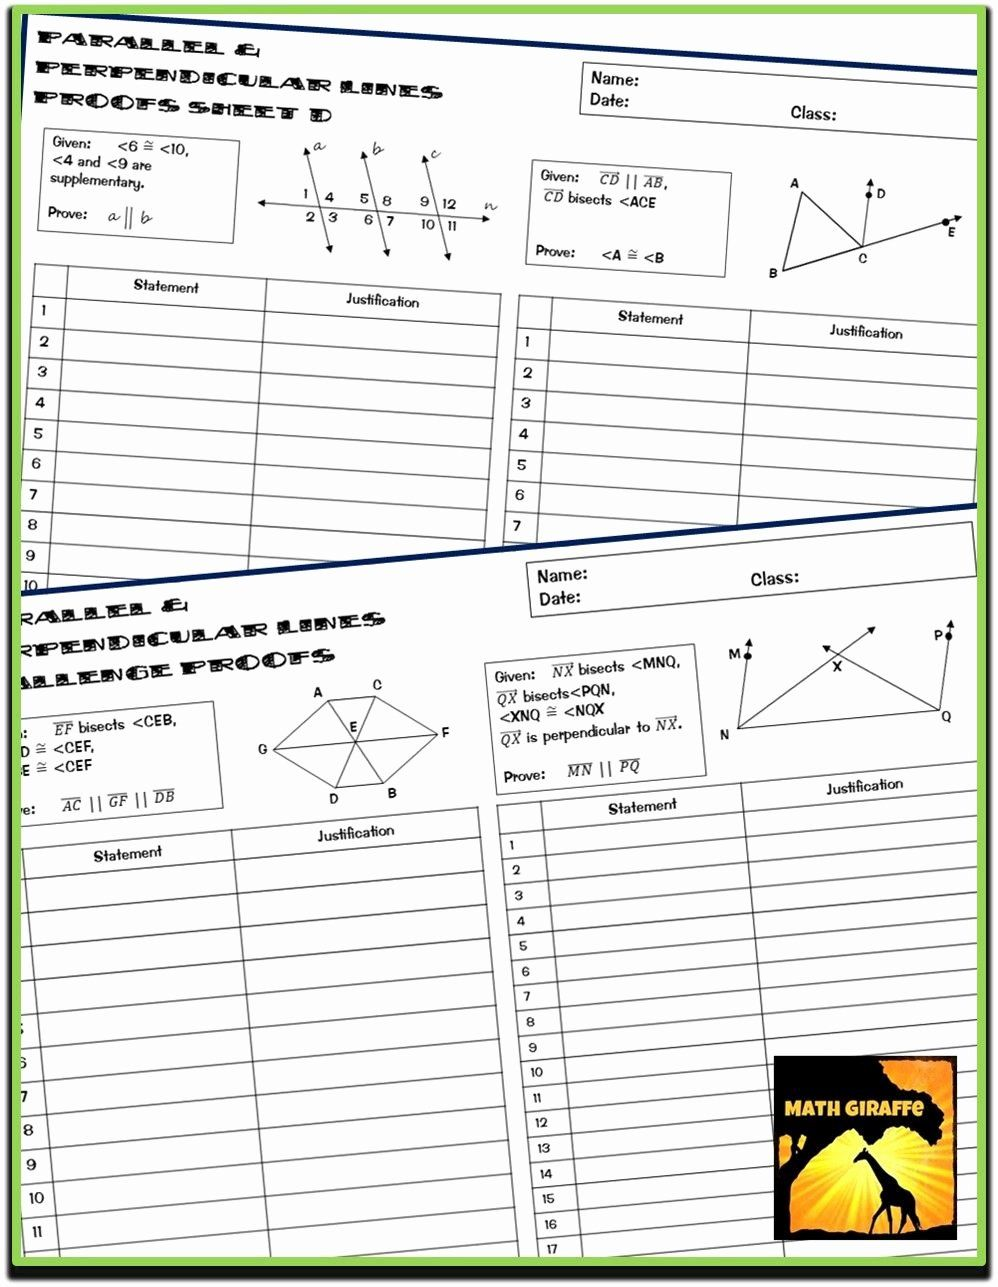 Algebraic Proofs Worksheet With Answers Awesome Algebraic Proofs Worksheet Do In 2020 Algebraic Proof Parallel And Perpendicular Lines Subject And Predicate Worksheets